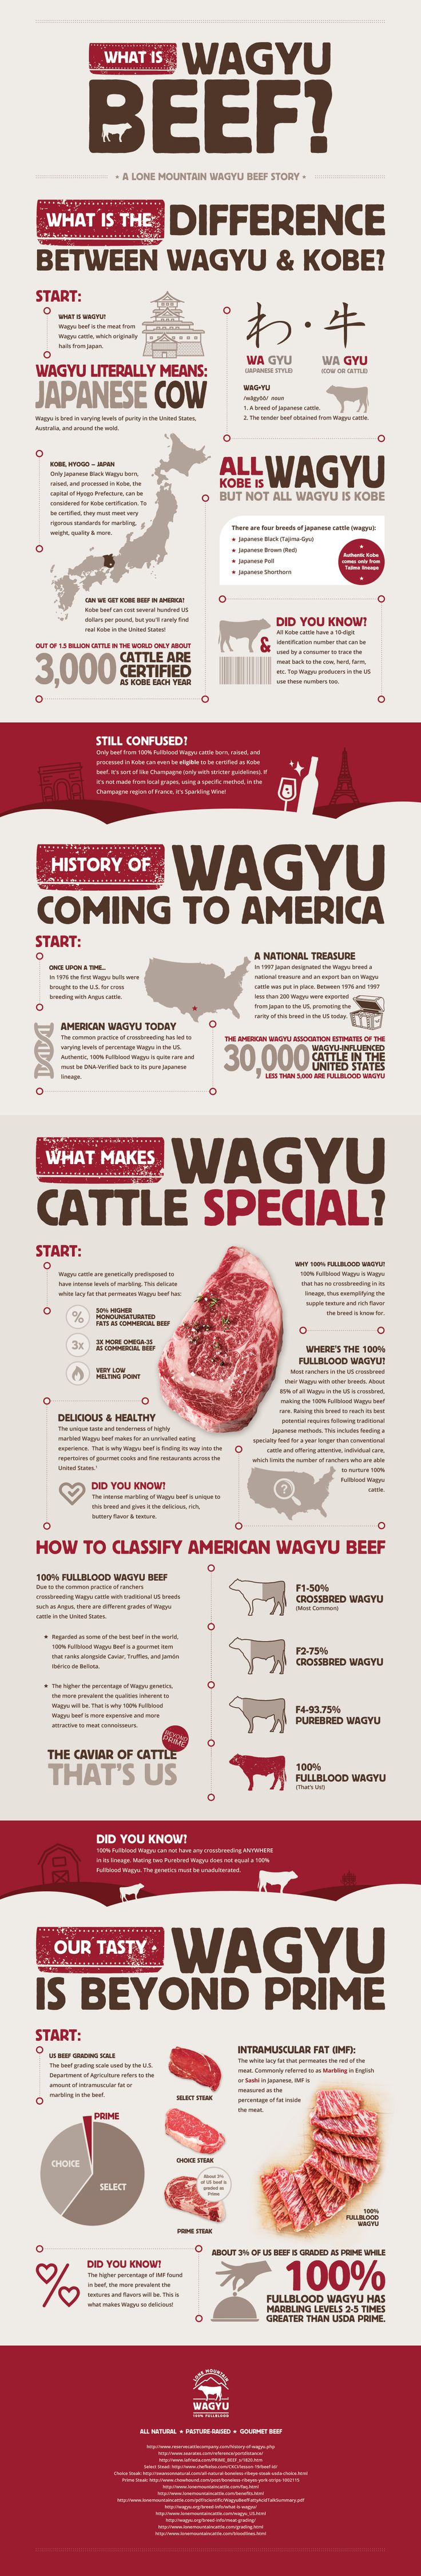 Questions about Wagyu? What is it? Are Wagyu and Kobe the same thing? Why is it so special? This infographic lays it out.